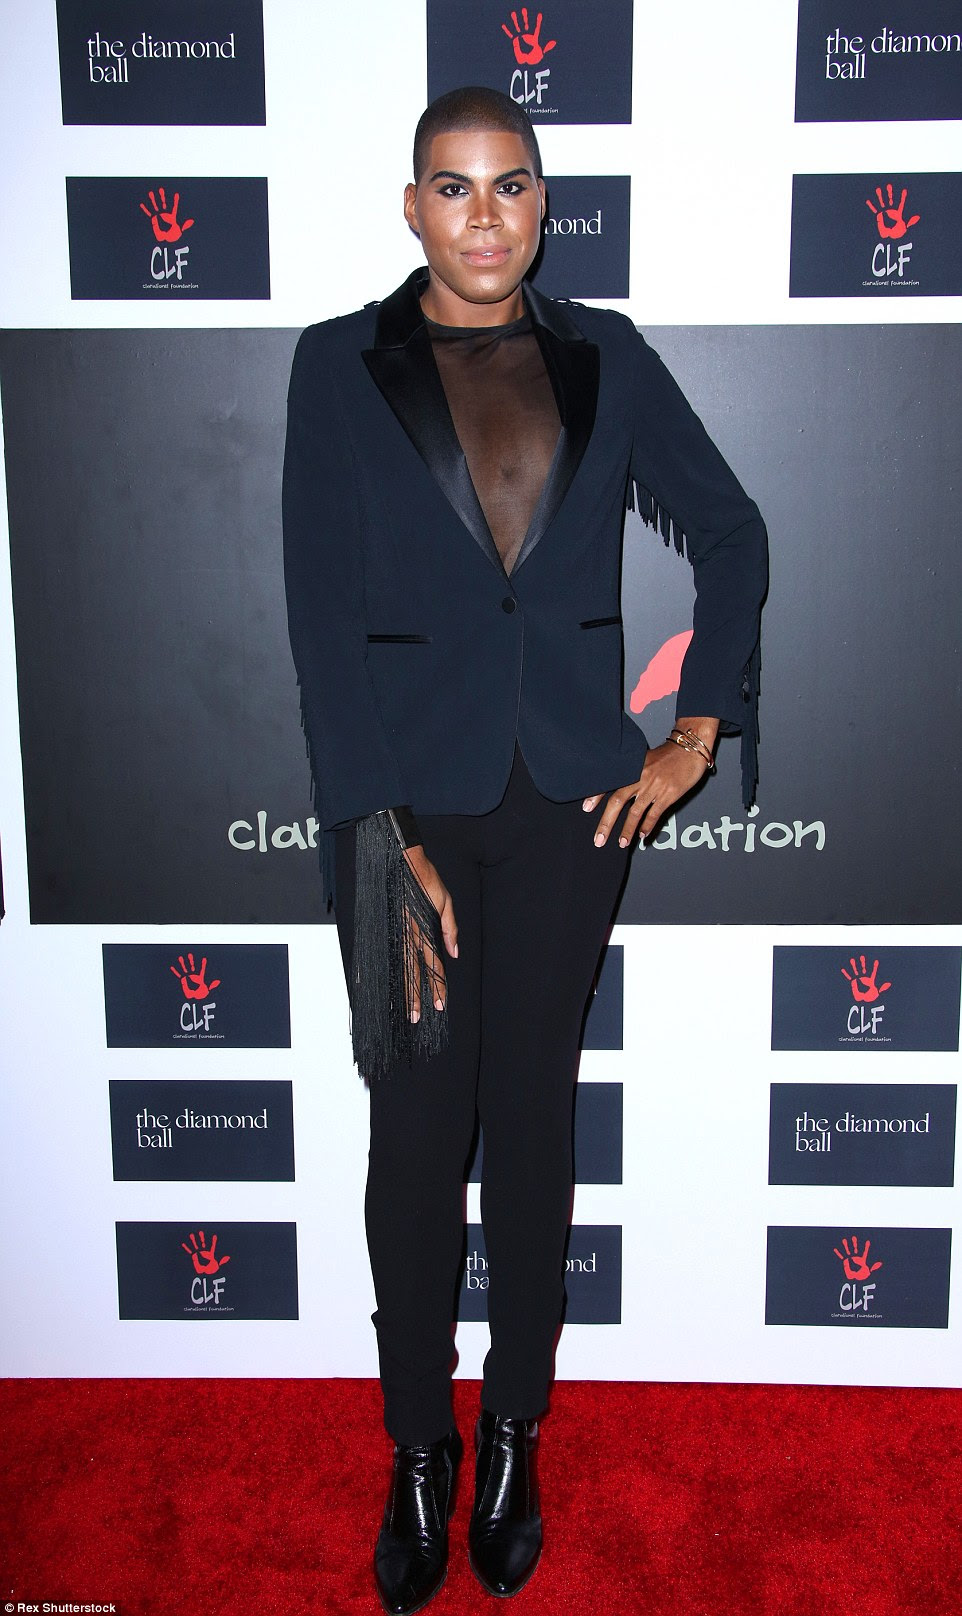 Unique style: Reality star EJ Johnson showed off his flair for fashion and impressive 180lb weight loss in a sheer top and fringed coat